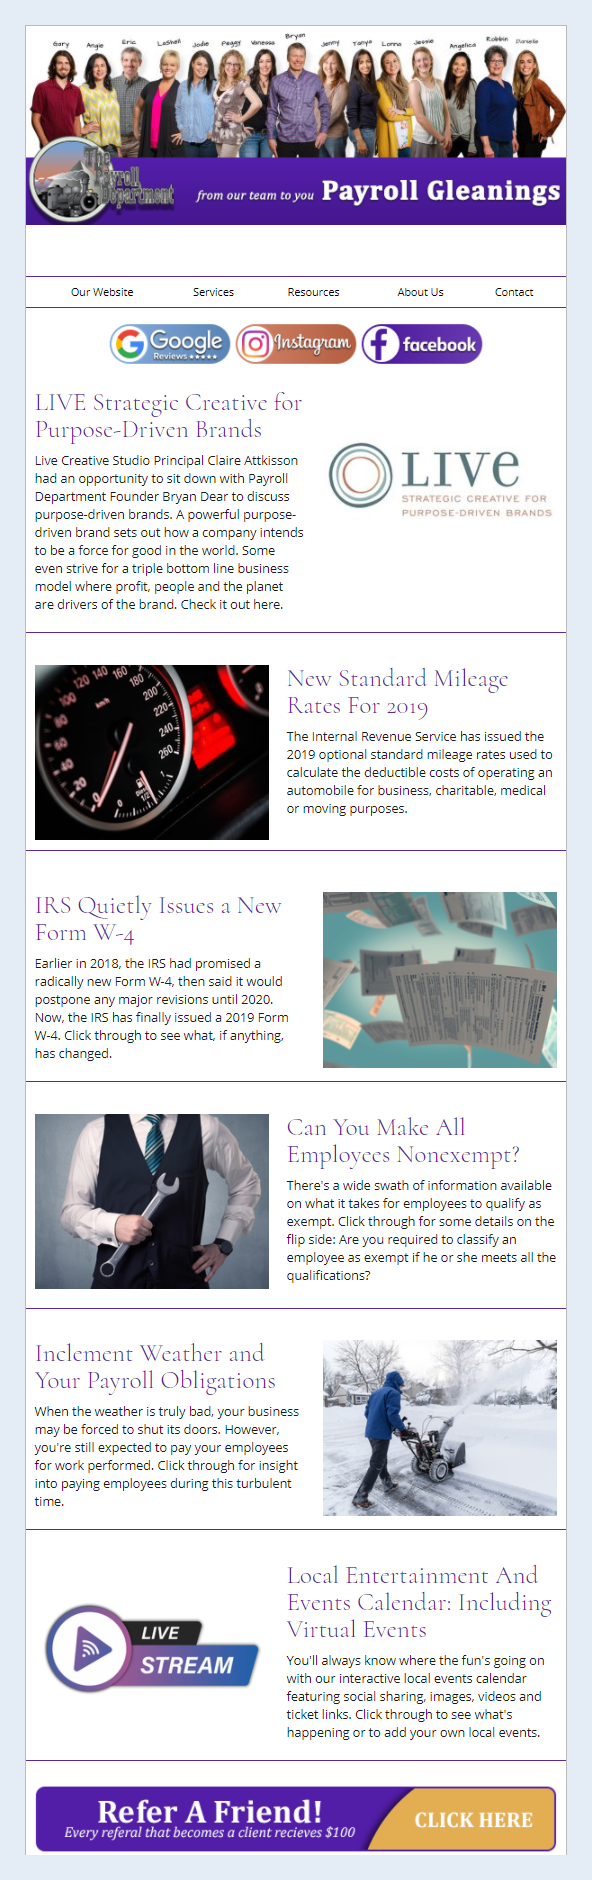 Dalby, Wendland & Co., P.C. - IndustryNewsletters Sample Email Newsletter